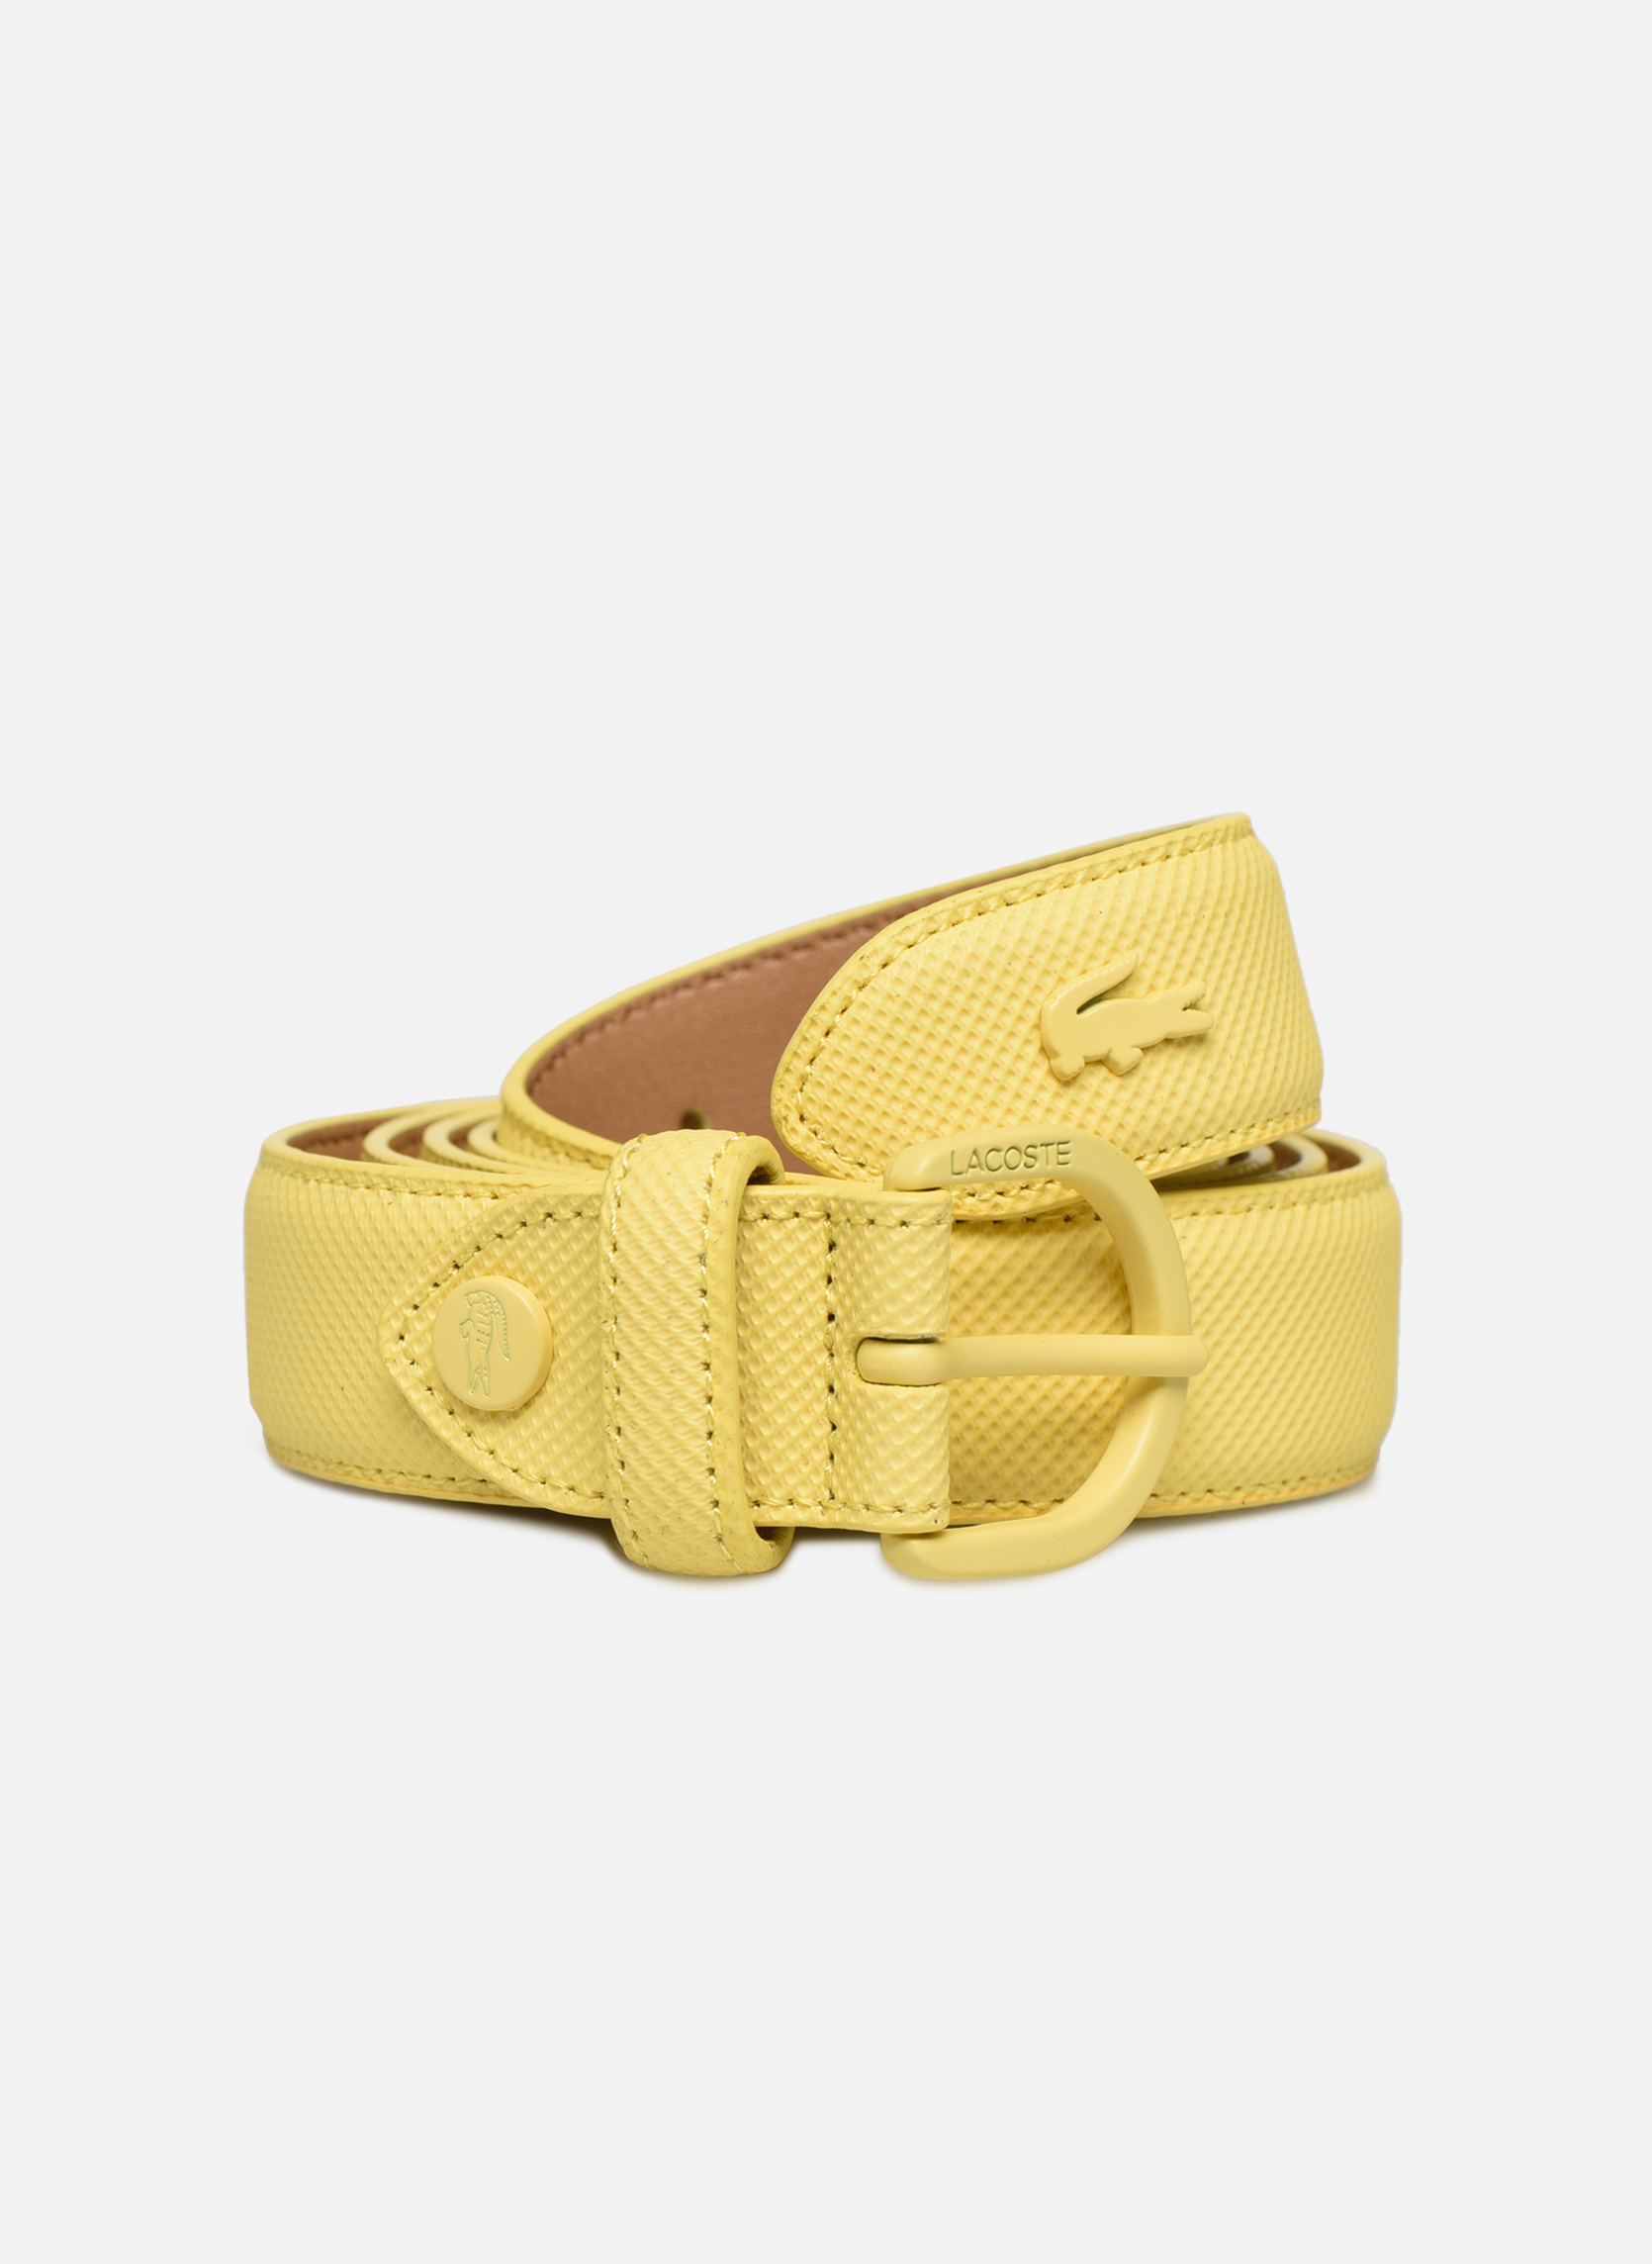 Bælter Accessories L1212 Ceinture 25mm